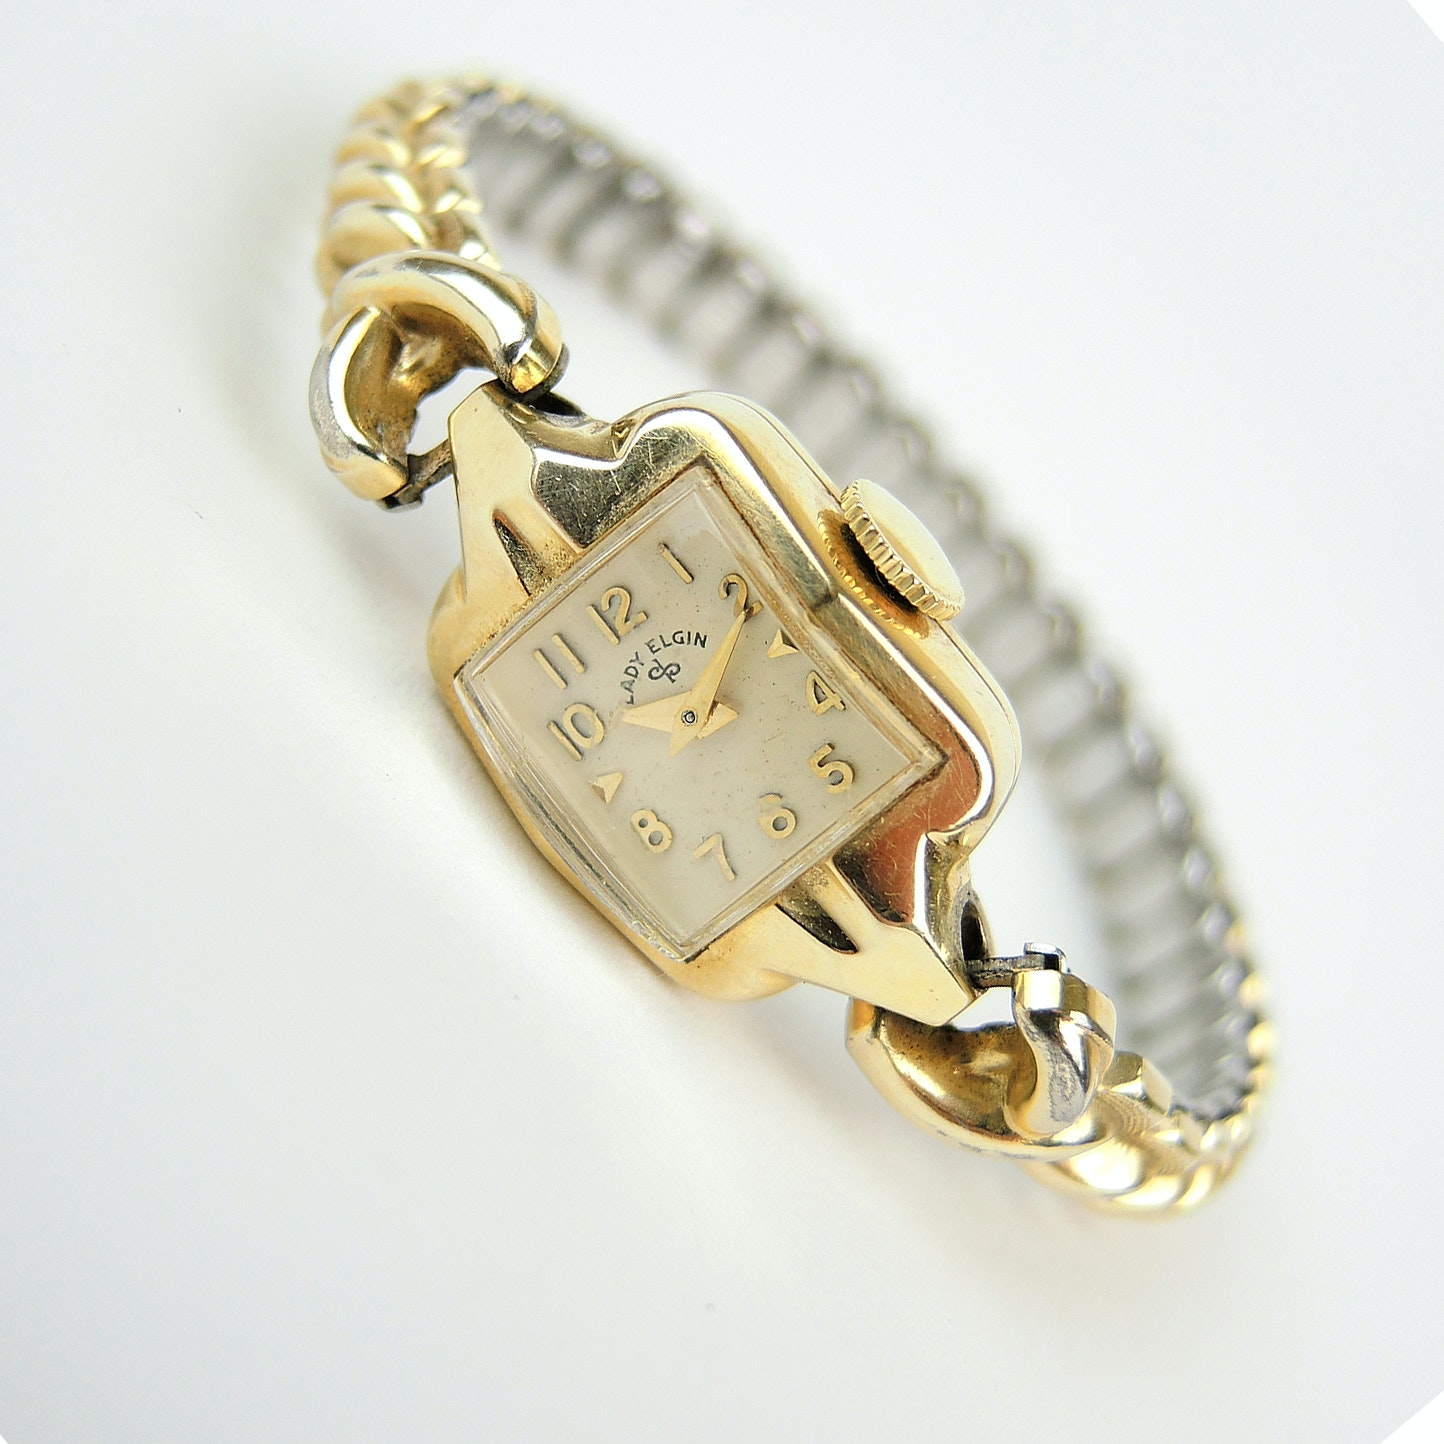 14K Gold Lady Elgin Stem Wind Wristwatch